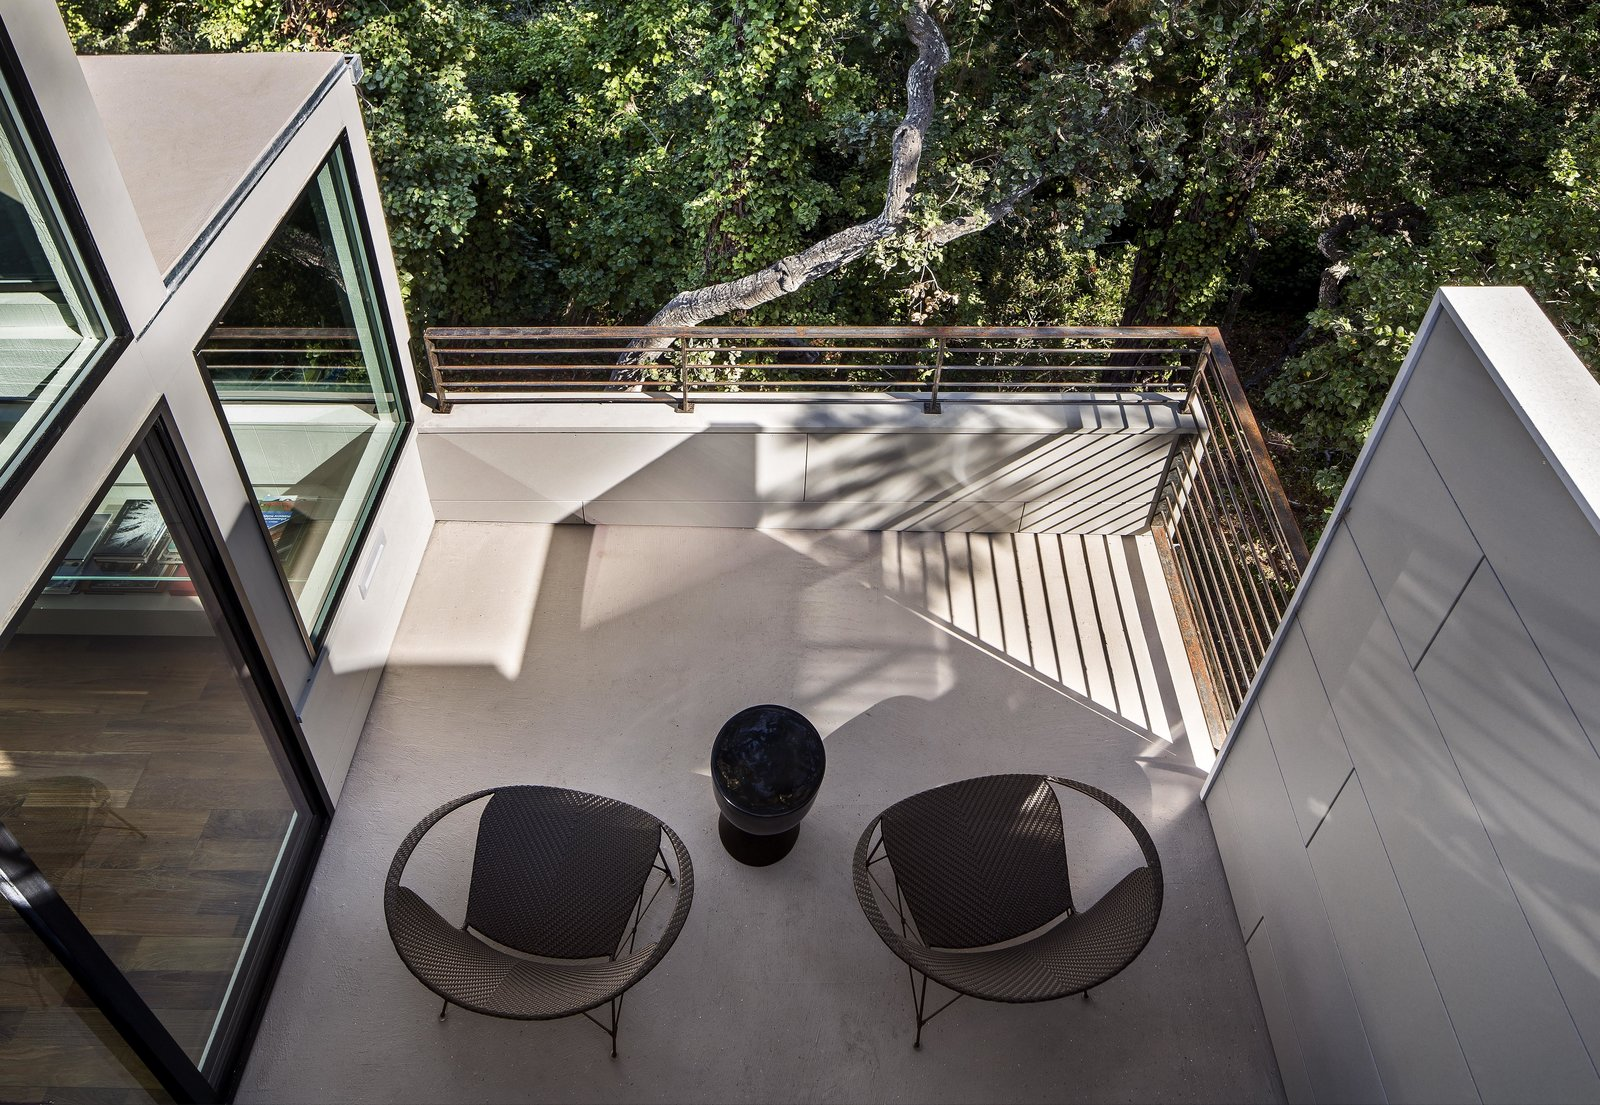 """When you have a tiny house, having outdoor spaces off a room can make a big difference,"" Schicketanz says. Luckily, each room already had its own deck, which the architect simply refurbished by installing concrete floors and galvanized stainless steel railings."